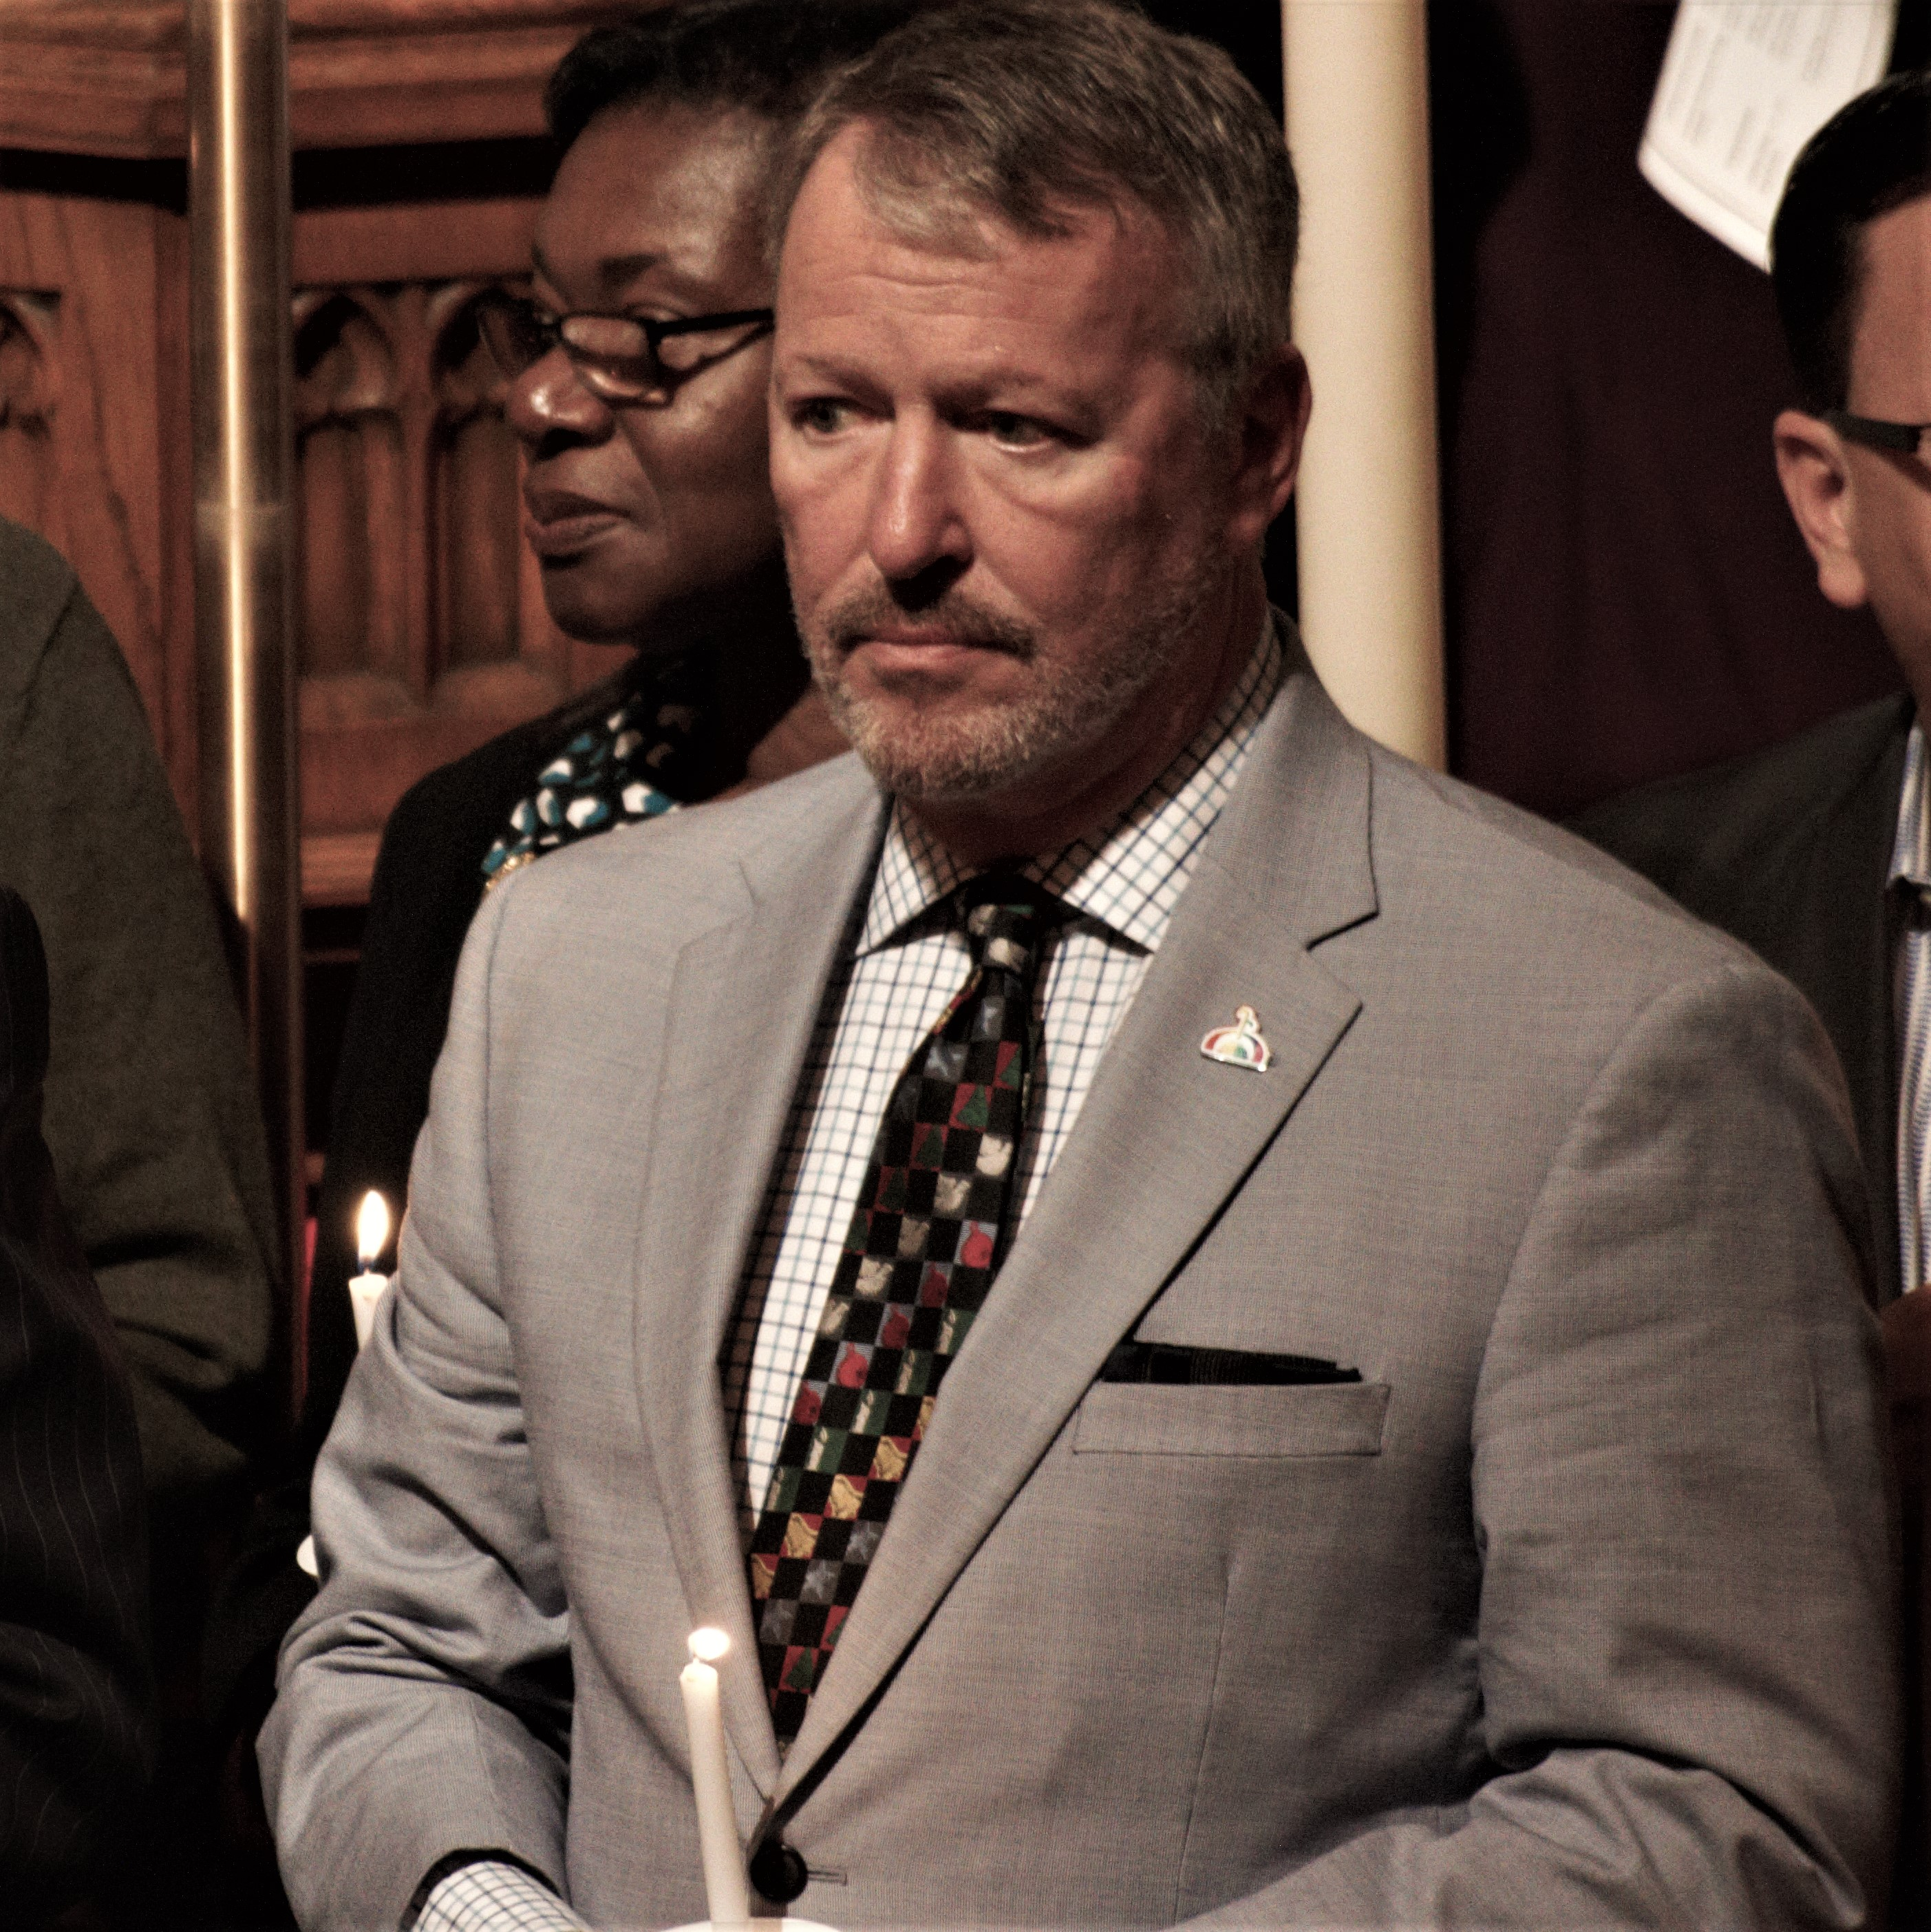 IDignity's Homeless Memorial Service - Mayor Buddy Dyer